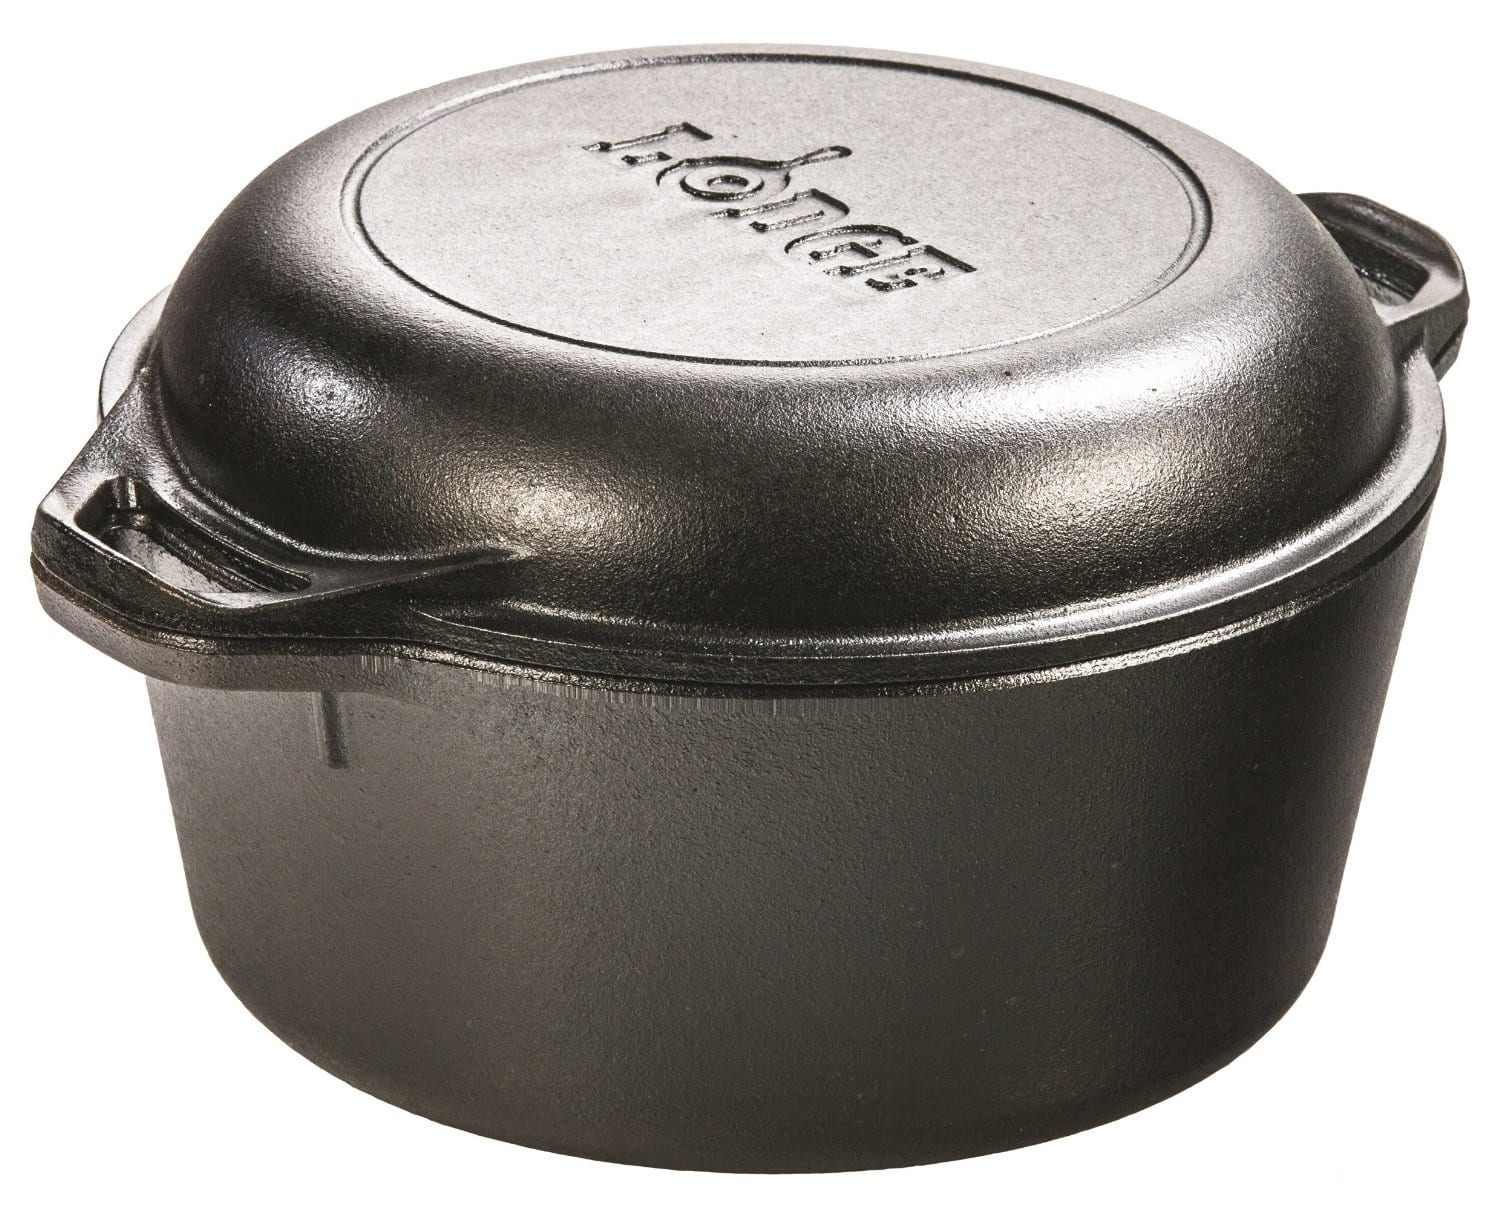 Lodge 5-Quart Double Dutch Oven w/ Skillet Cover  $31.50